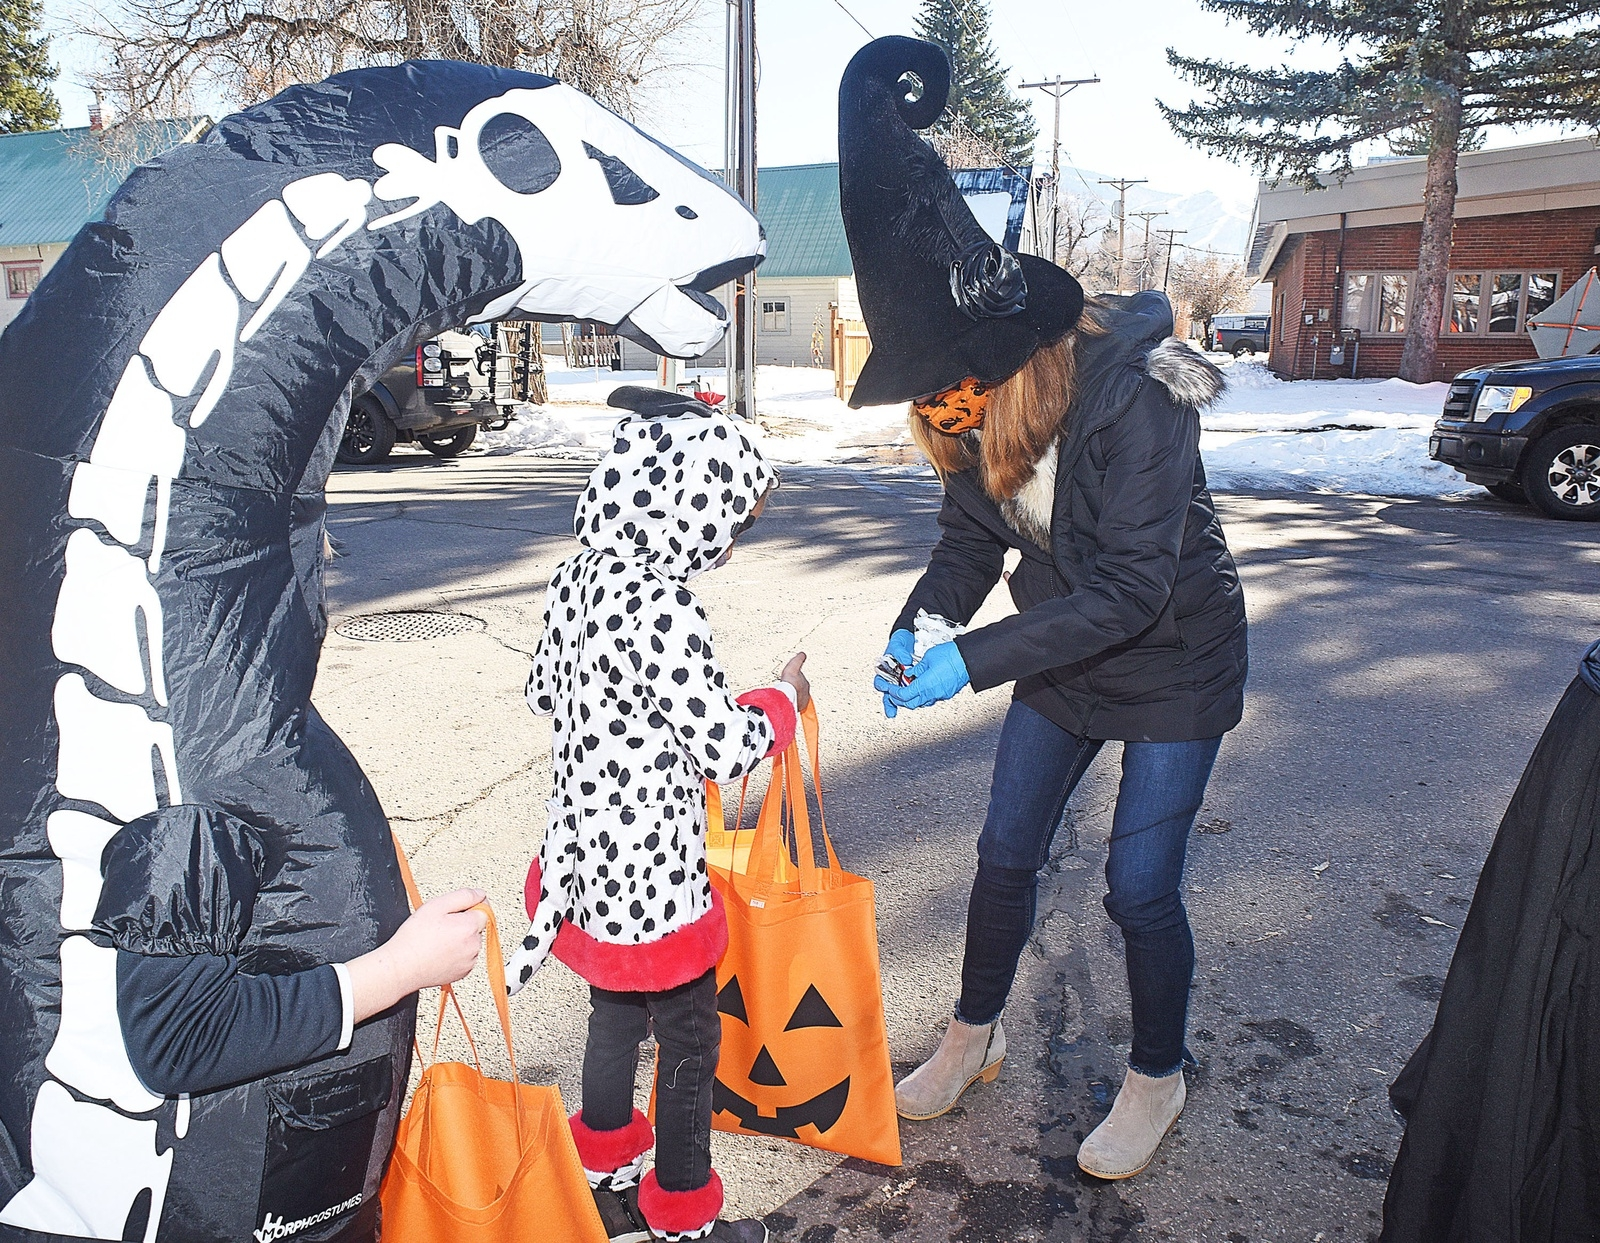 Jennifer Grathwohl hands out candy at the Emerald Mountain School's trick or treat event Friday morning in the alley way outside the school. The event was held outdoor with each class taking a turn at visiting distanced Halloween stands where teachers and portents safely handed out treats to the costumed children who were all wearing protective masks.